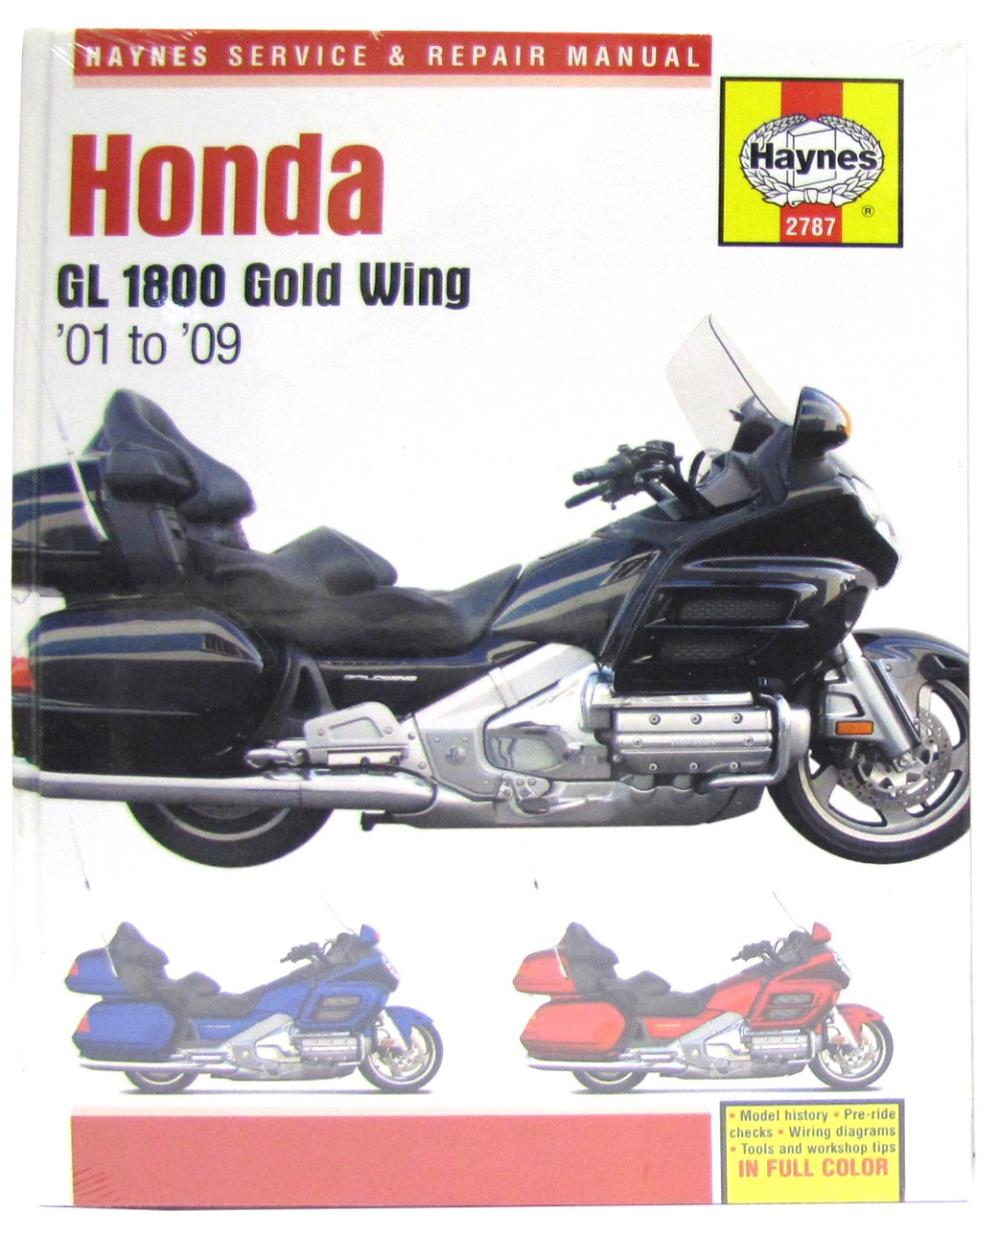 manual haynes for 2010 honda gl 1800 a gold wing ebayimage is loading manual haynes for 2010 honda gl 1800 a